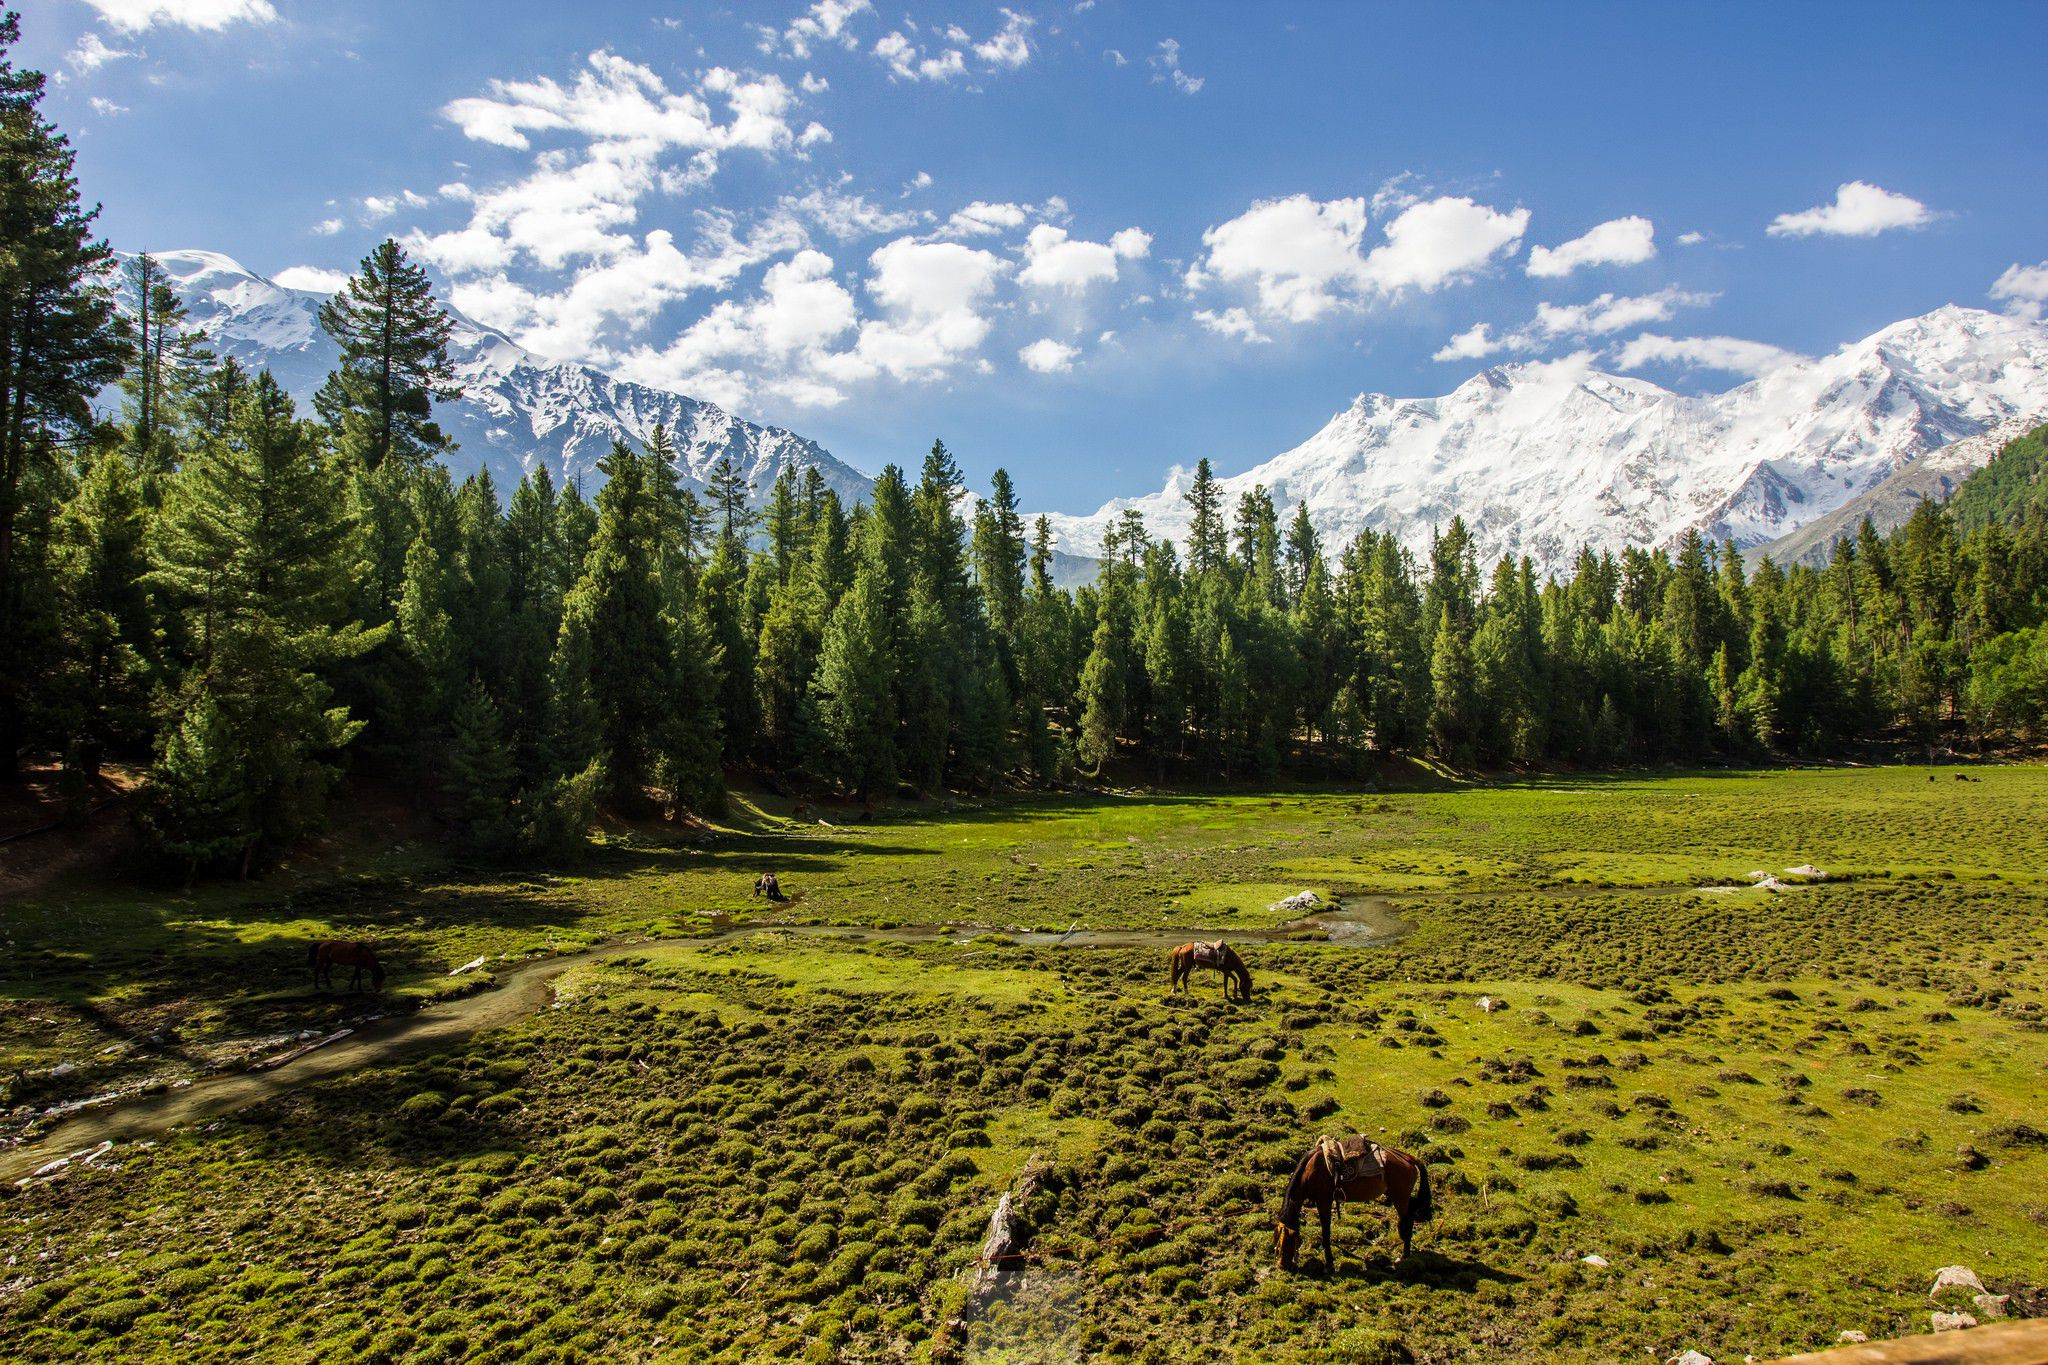 Two horses near the mount Nanga Parbat